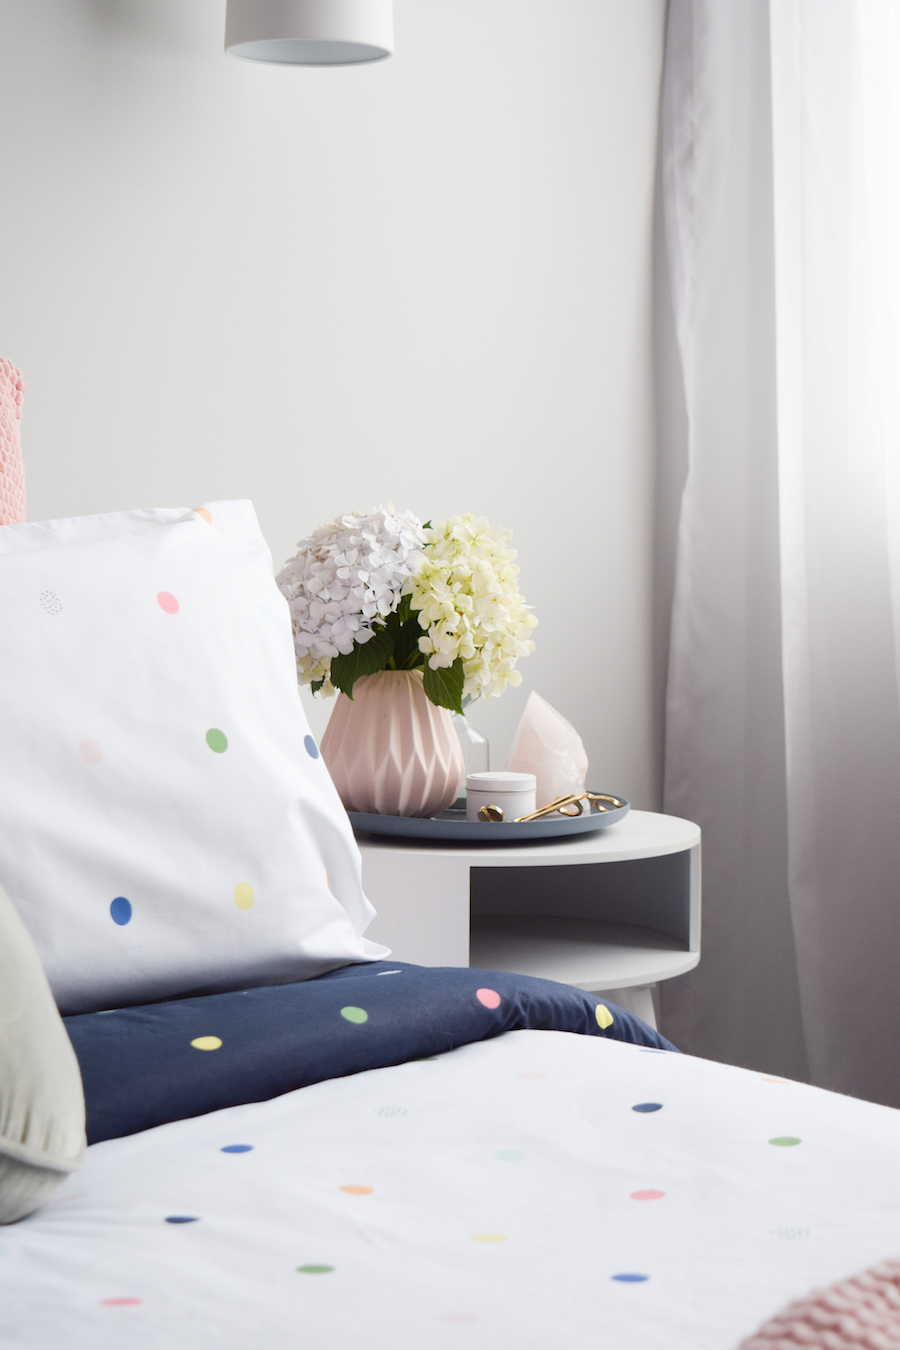 Bedside arrangement get your home ready for spring